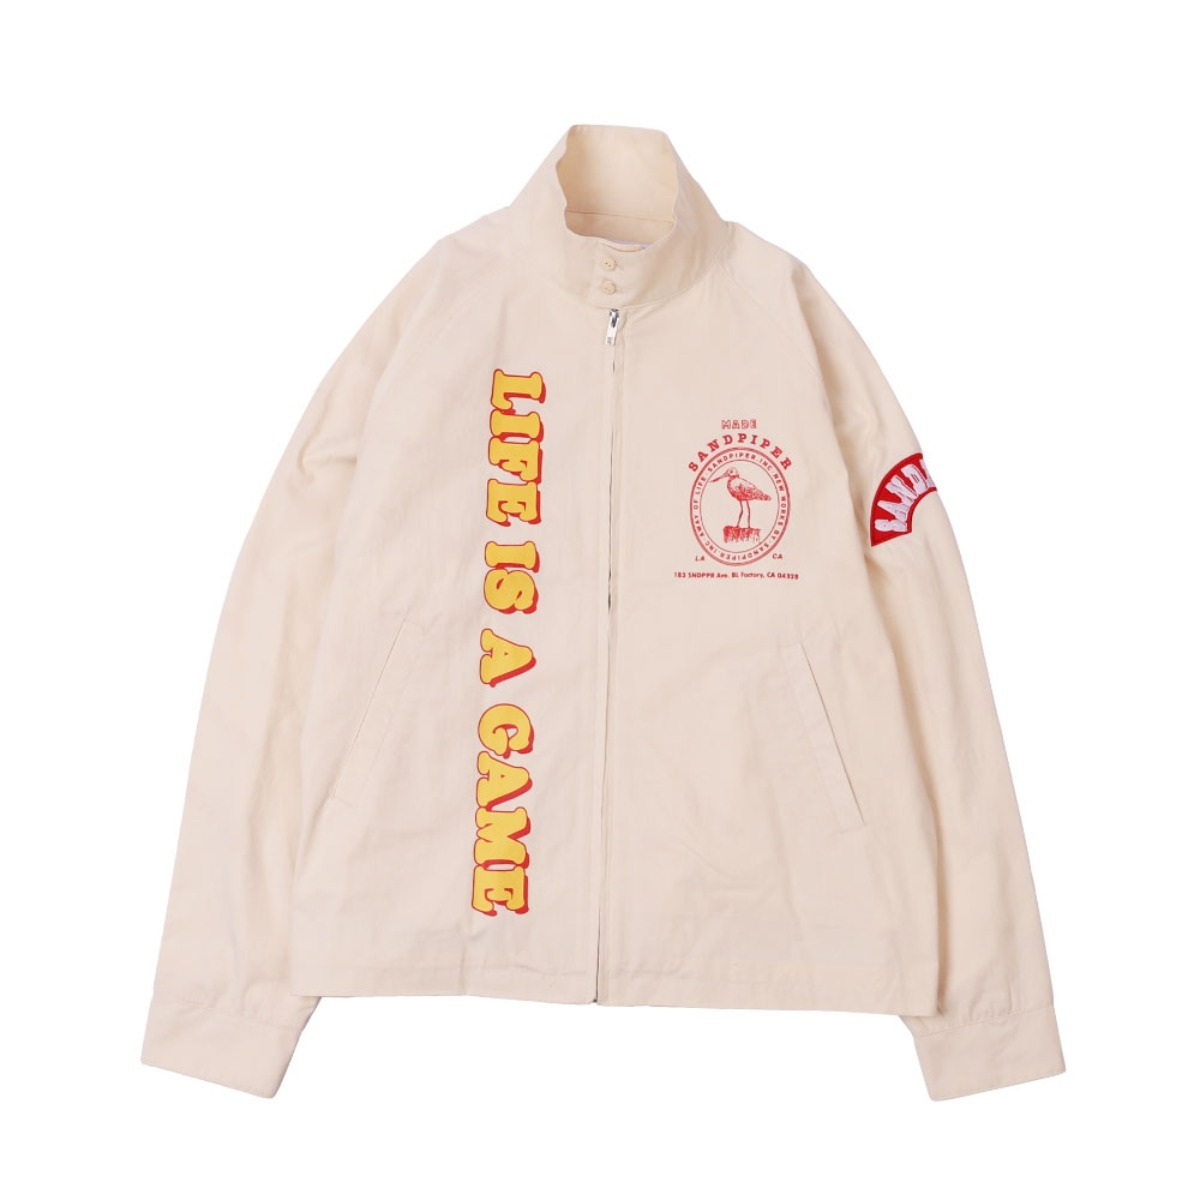 LIFE IS A GAME DRIZZLER JACKET (Beige)